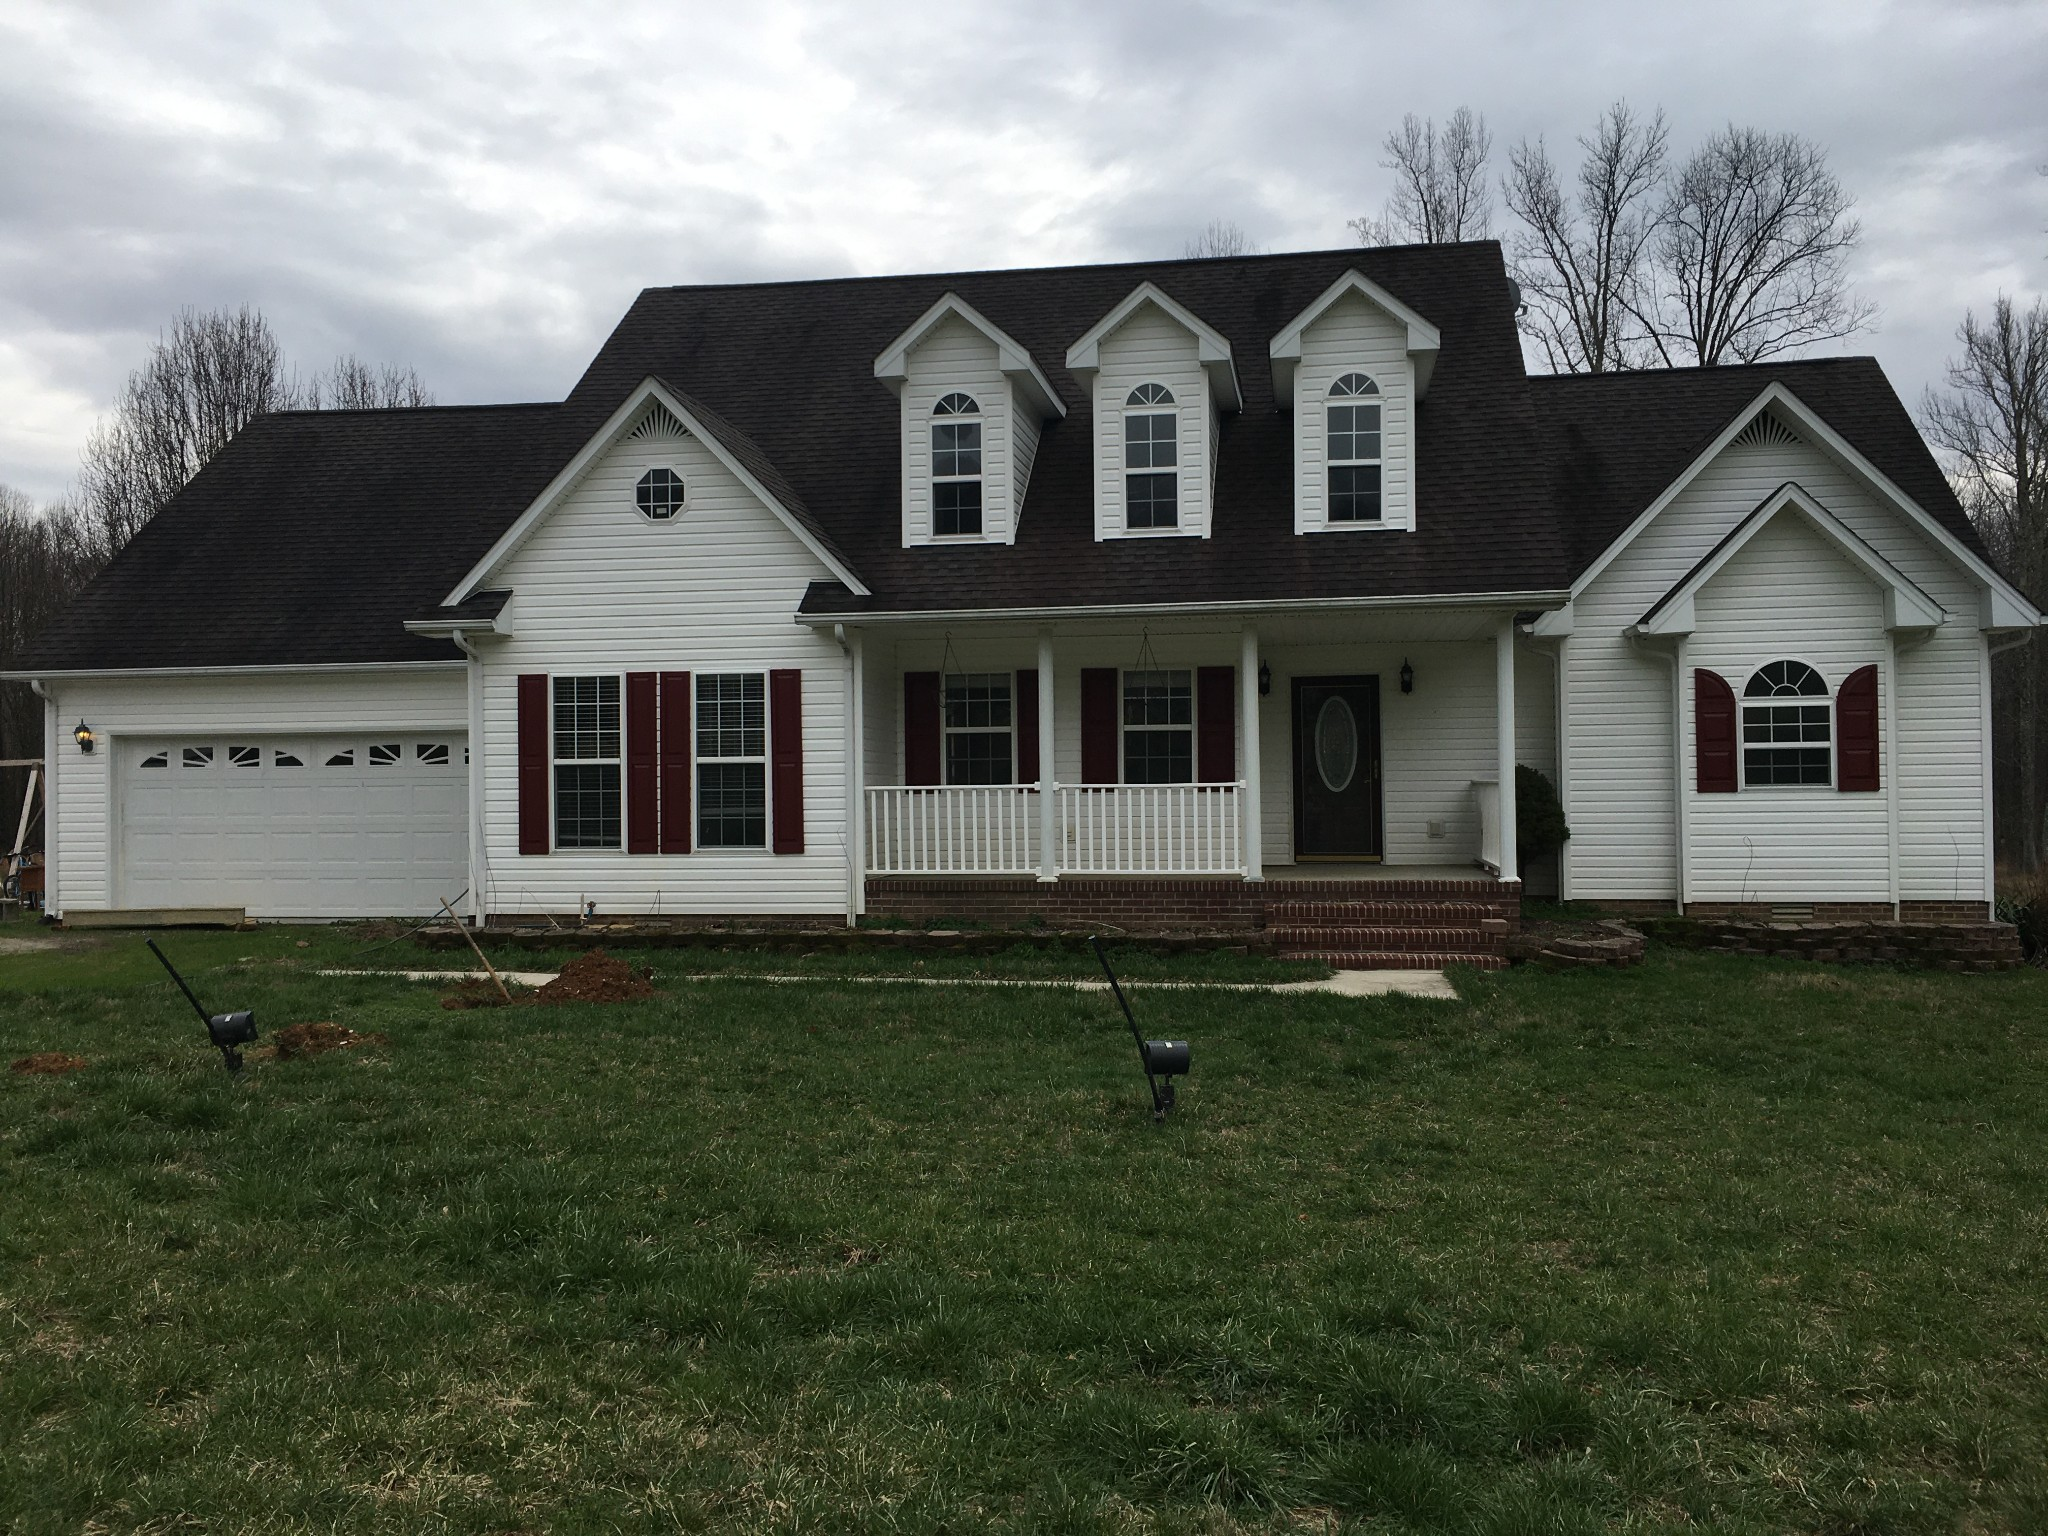 7201 Null Rd, Cookeville, TN 38506 - Cookeville, TN real estate listing